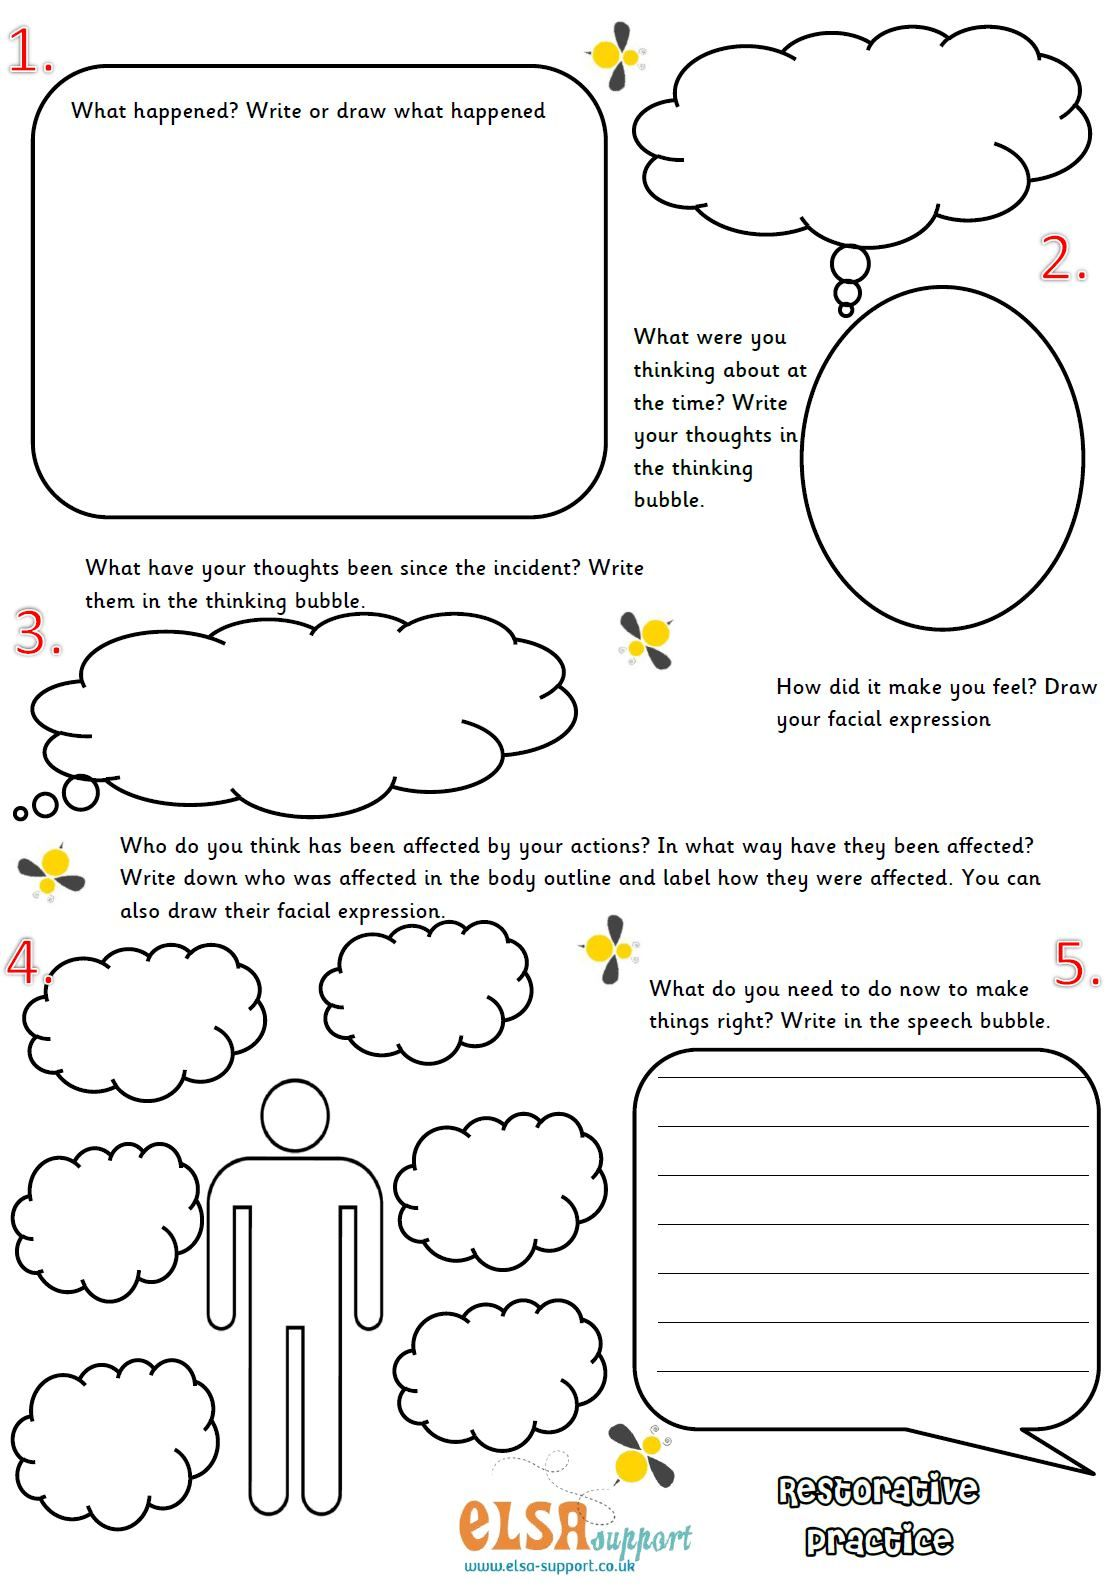 Worksheets For Therapy : Restorative practice image school pinterest